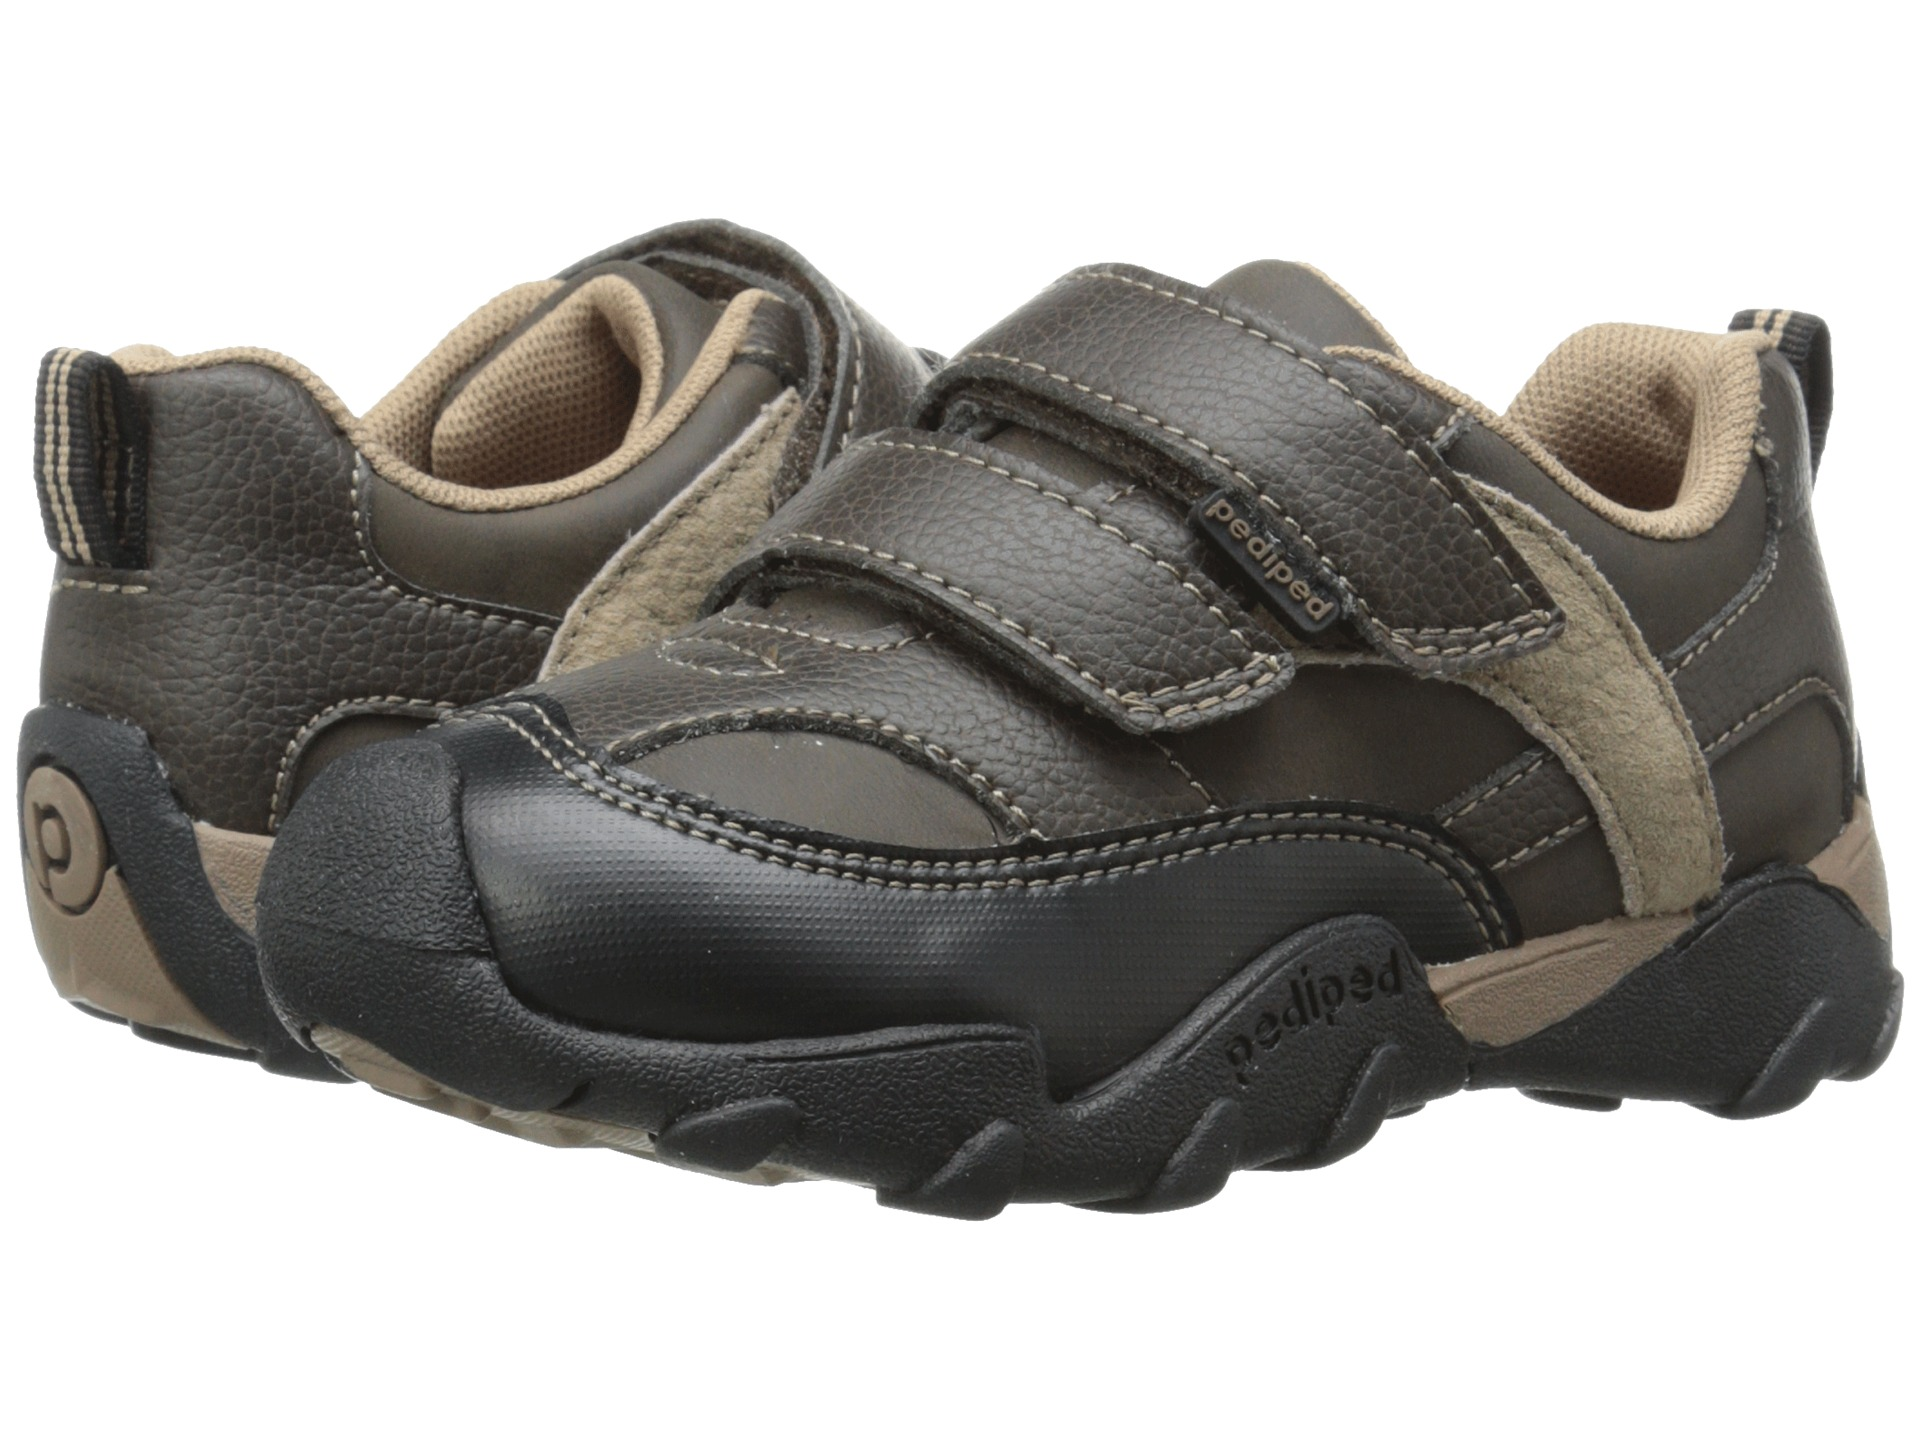 Pediped Toddler Shoes Review